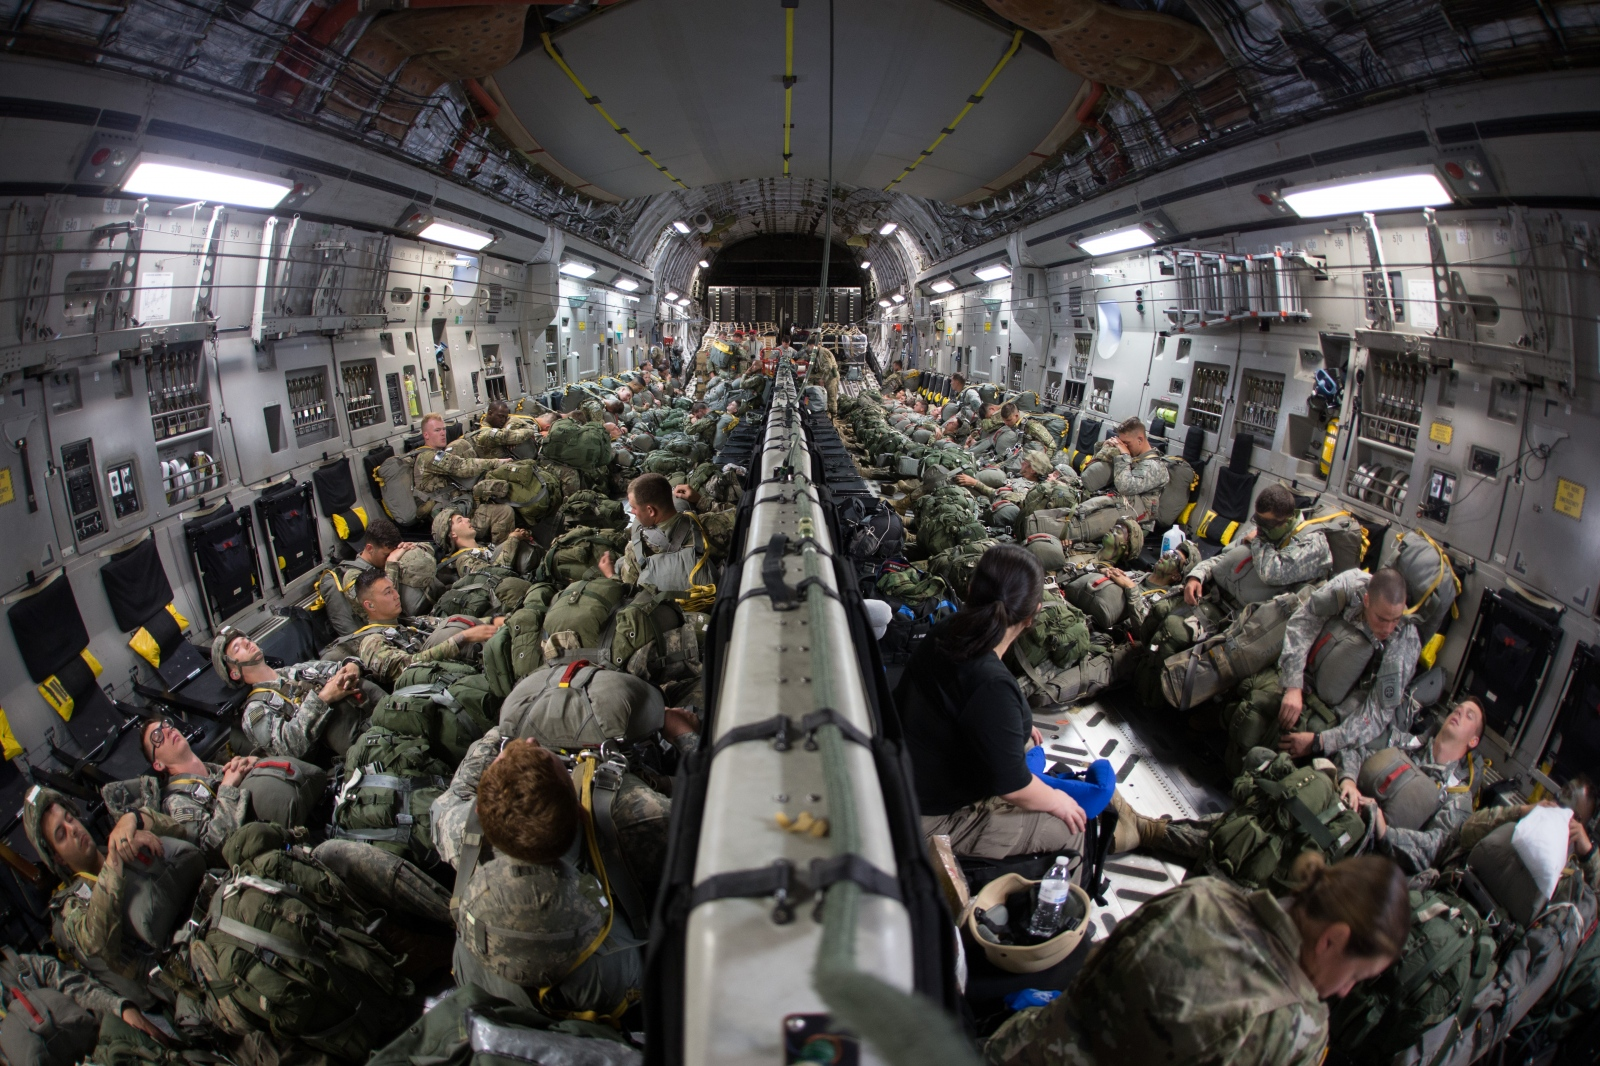 Paratroopers from the 82nd Airborne relax over the Atlantic while enroute to a training mission in Gabon Africa.